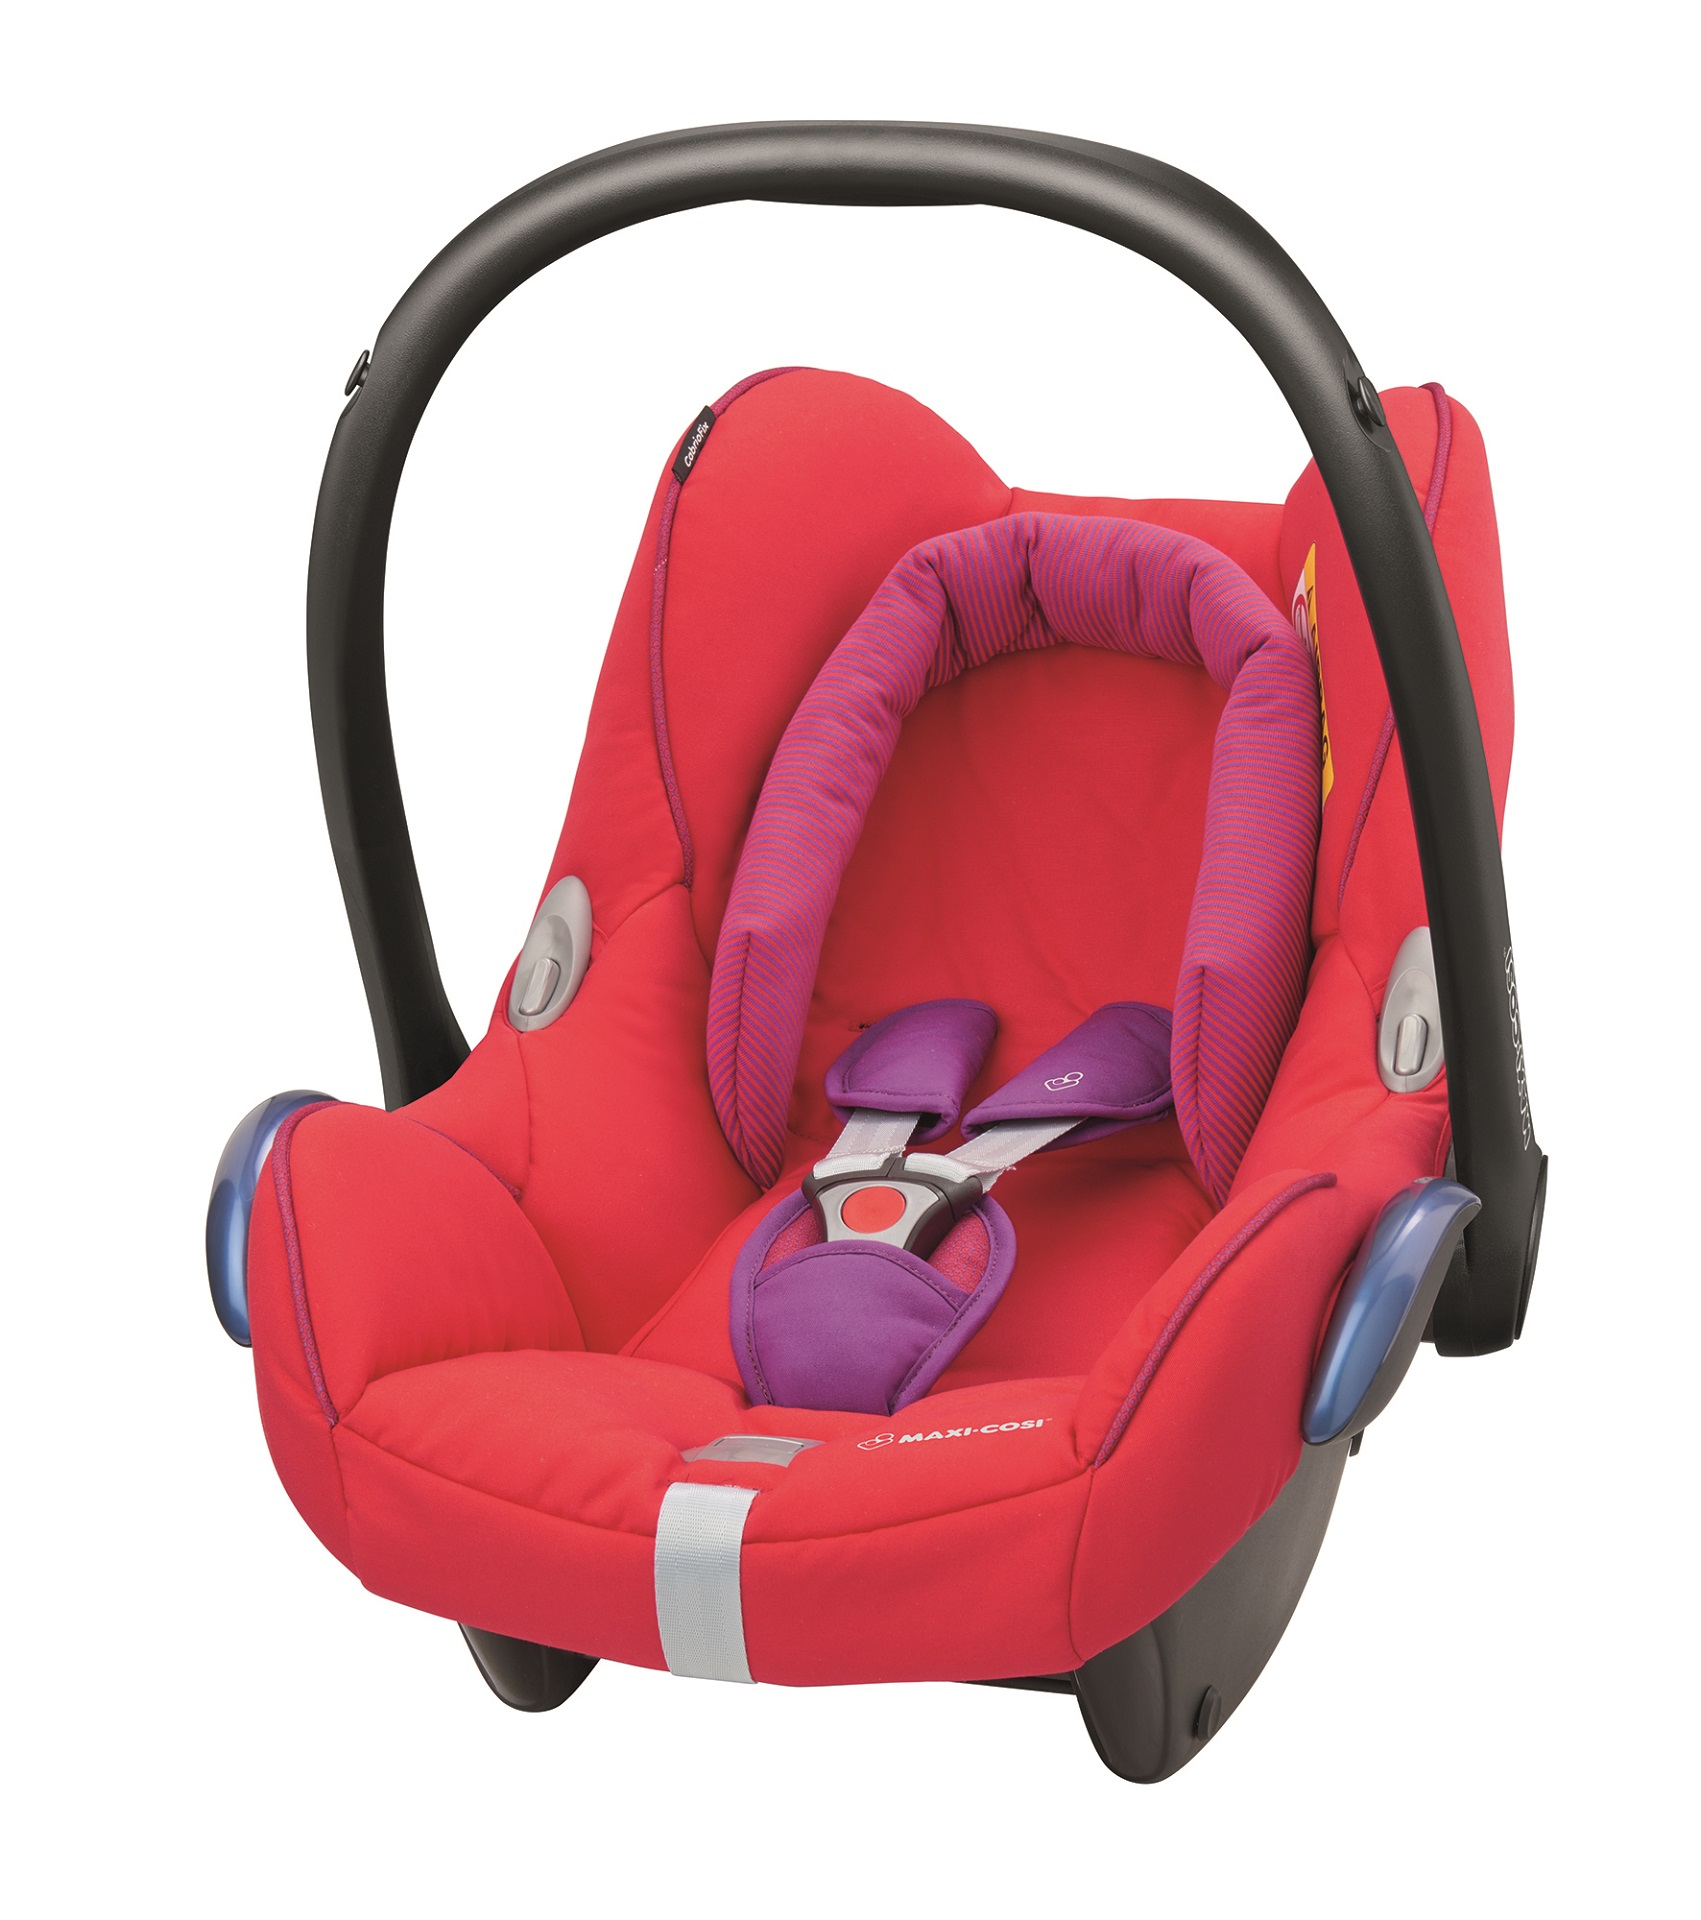 maxi cosi infant carrier cabriofix 2017 red orchid buy at kidsroom car seats. Black Bedroom Furniture Sets. Home Design Ideas